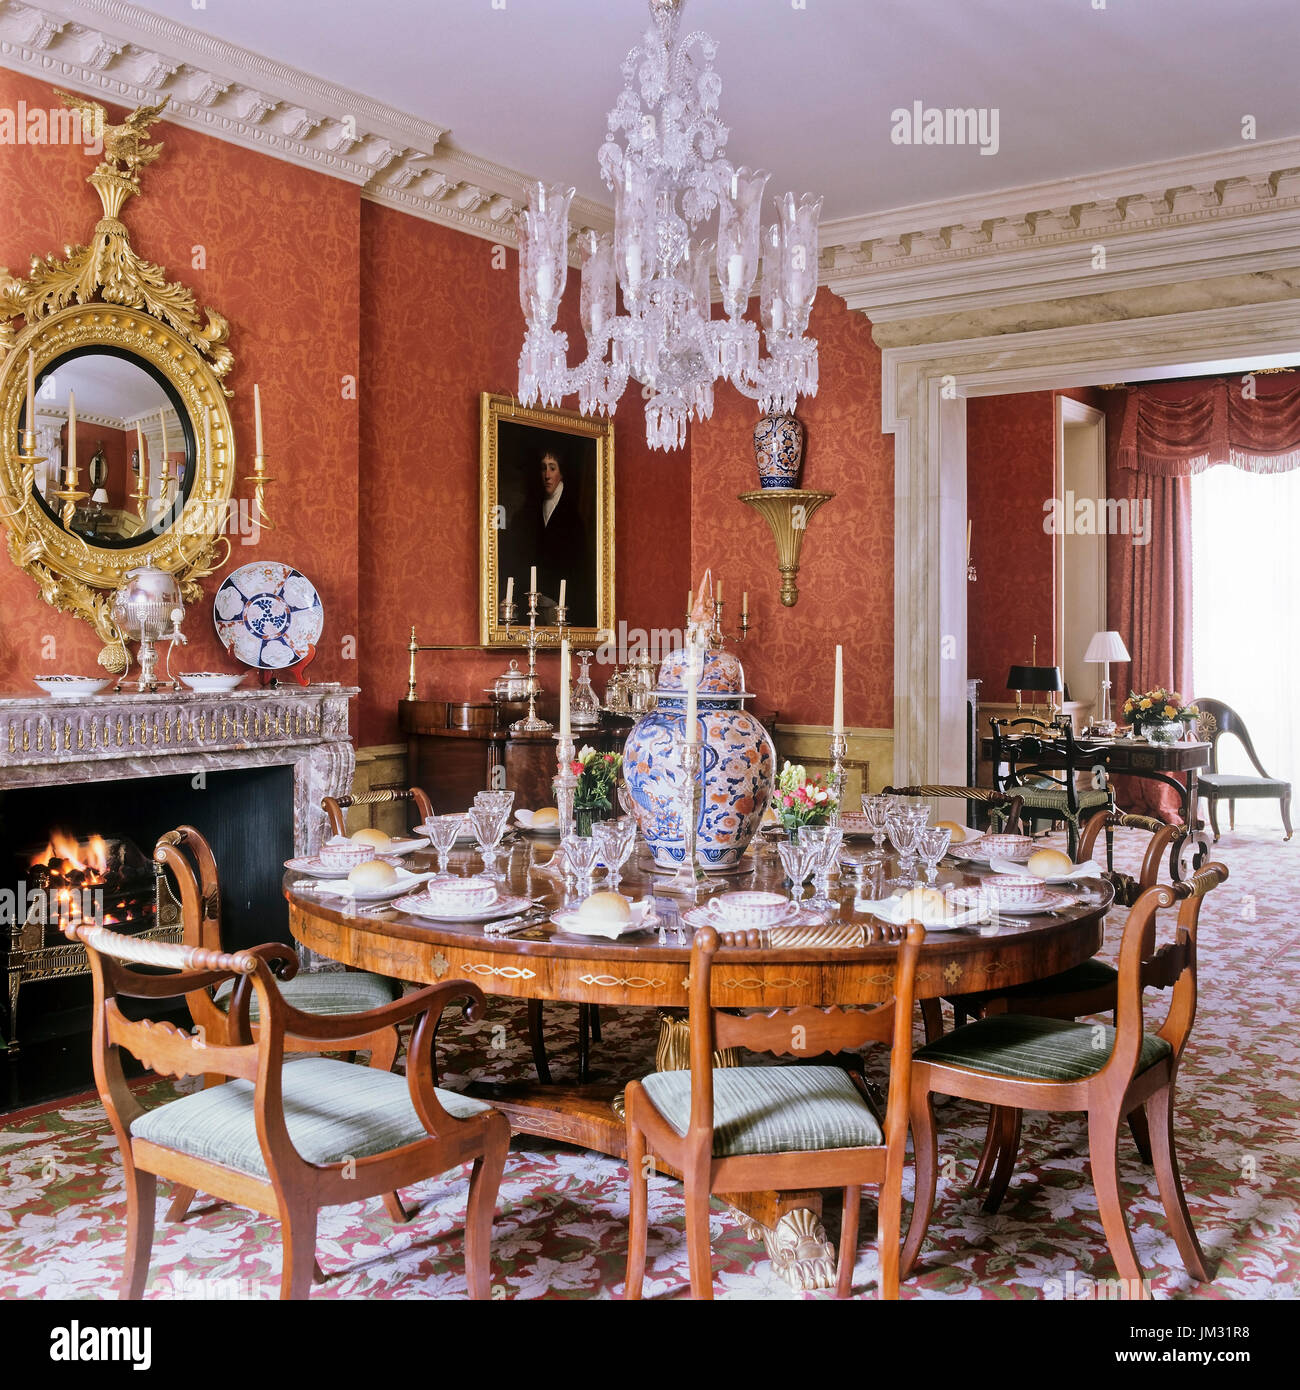 Victorian Style Dining Room: Candle Lit Room Stock Photos & Candle Lit Room Stock